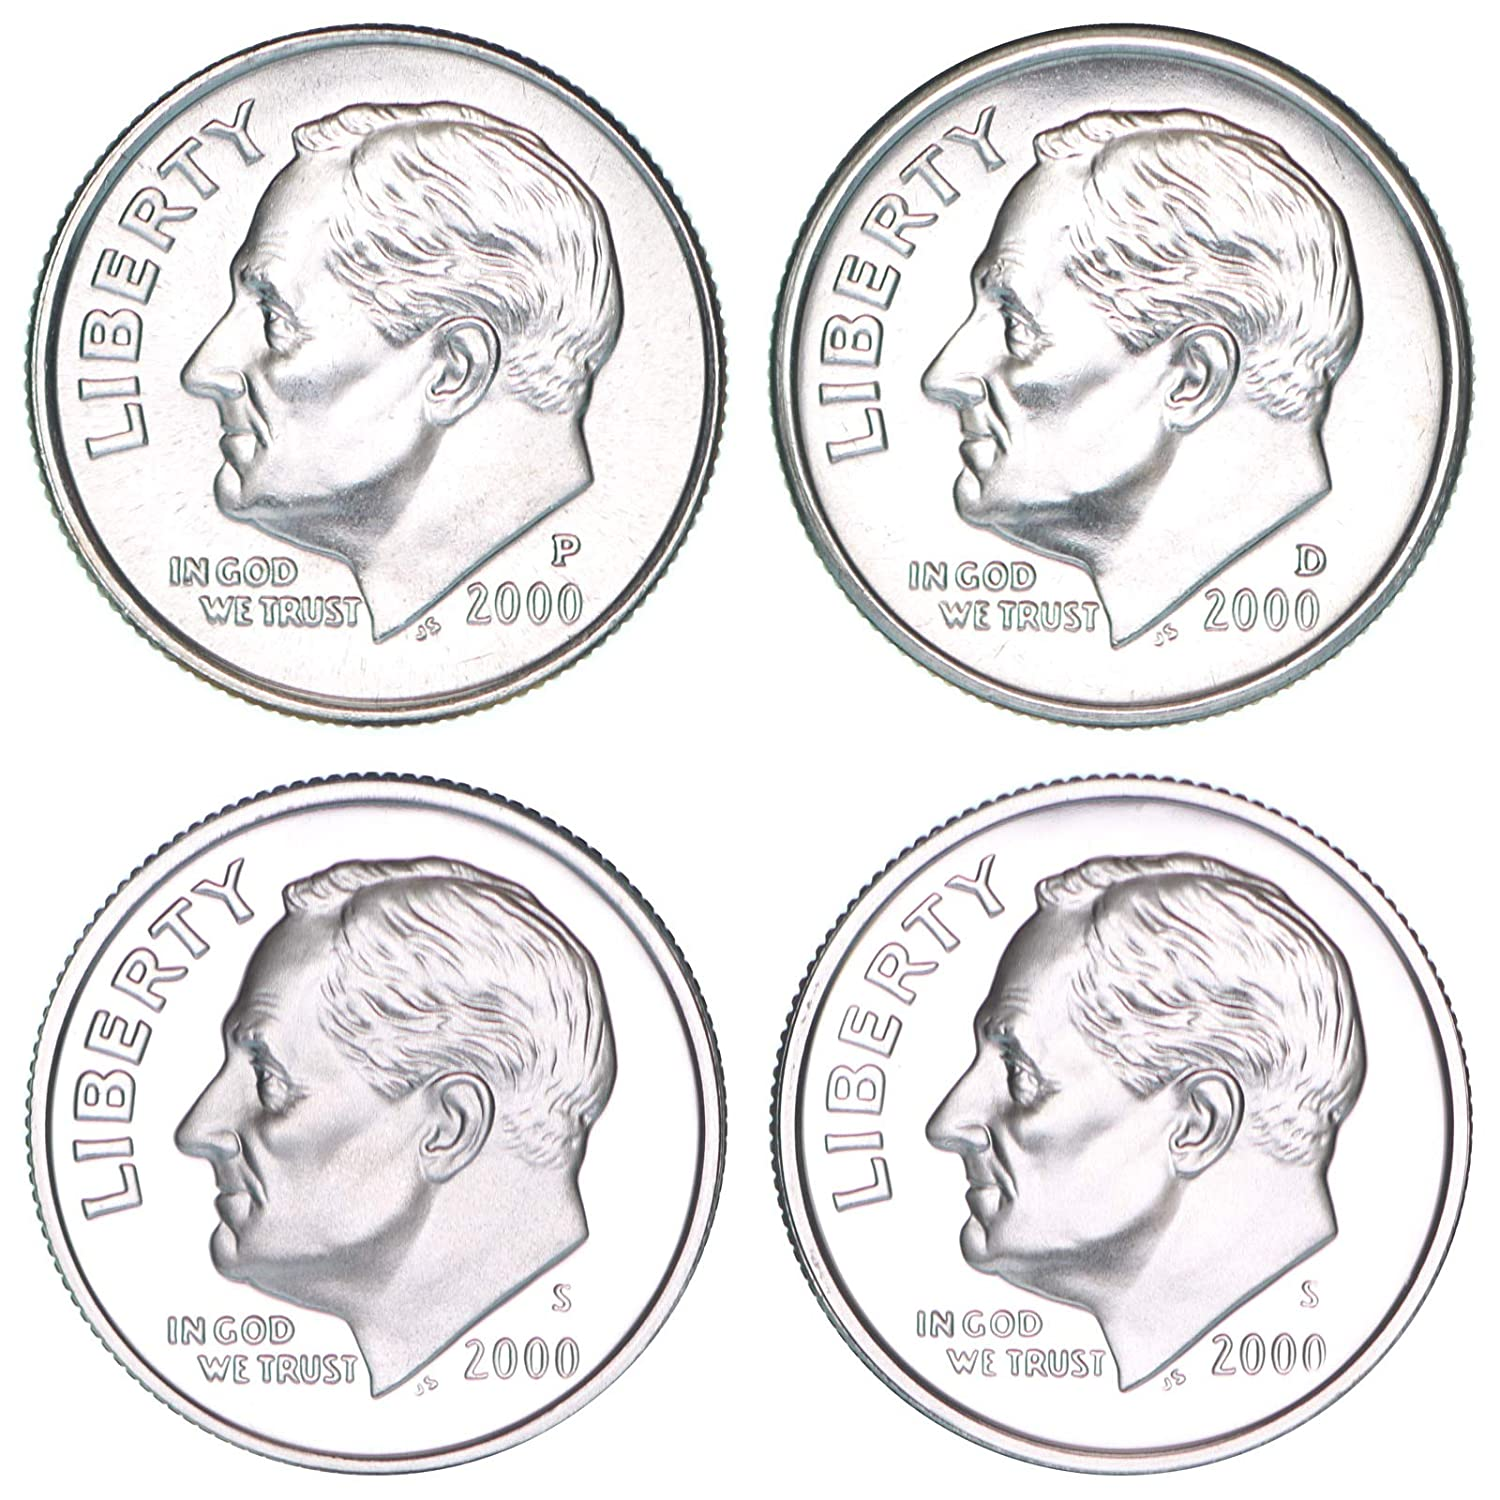 1999-P-D-S ROOSEVELT DIMES FROM MINT /& PROOF SETS #-1 SEE PICTURES